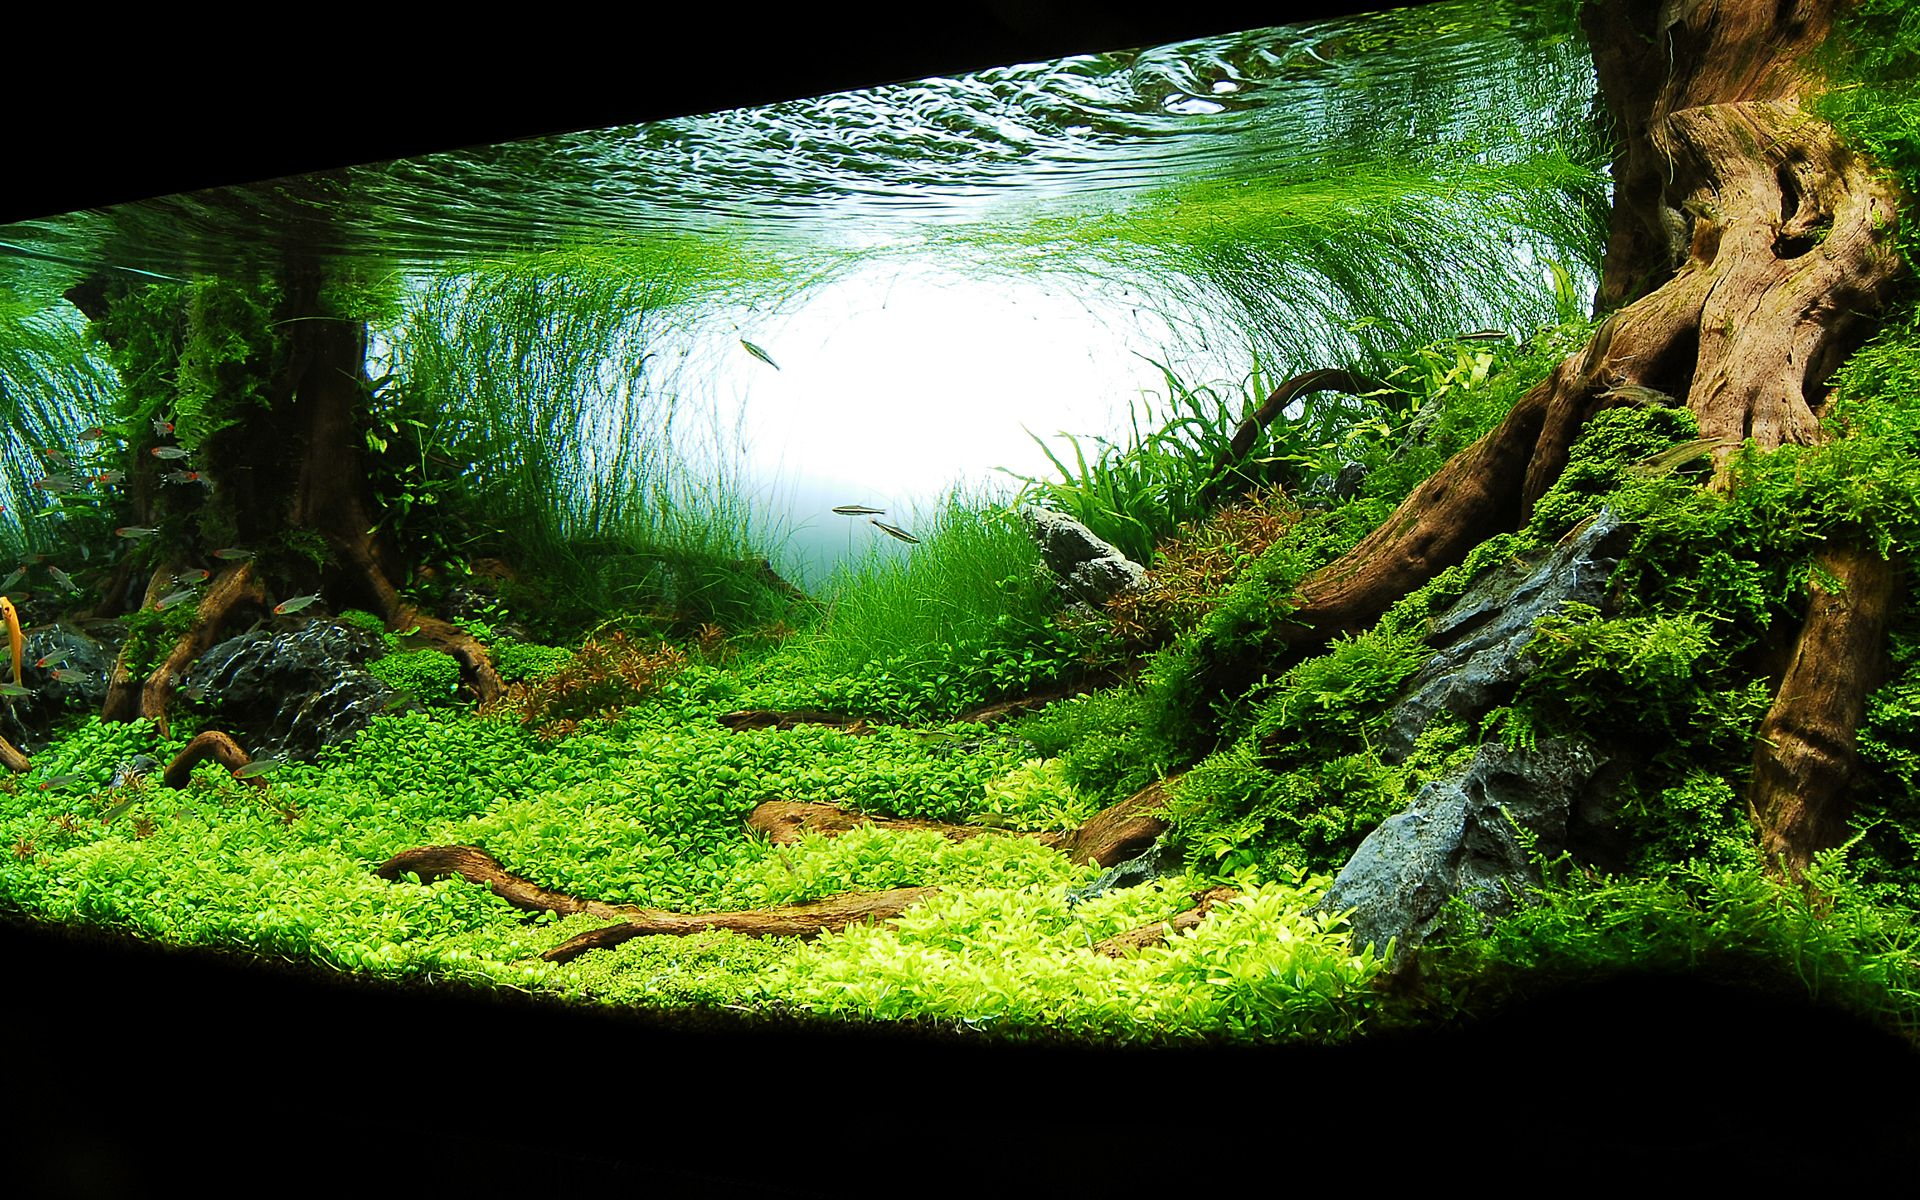 Aquarium wallpaper hd for Plante aquarium